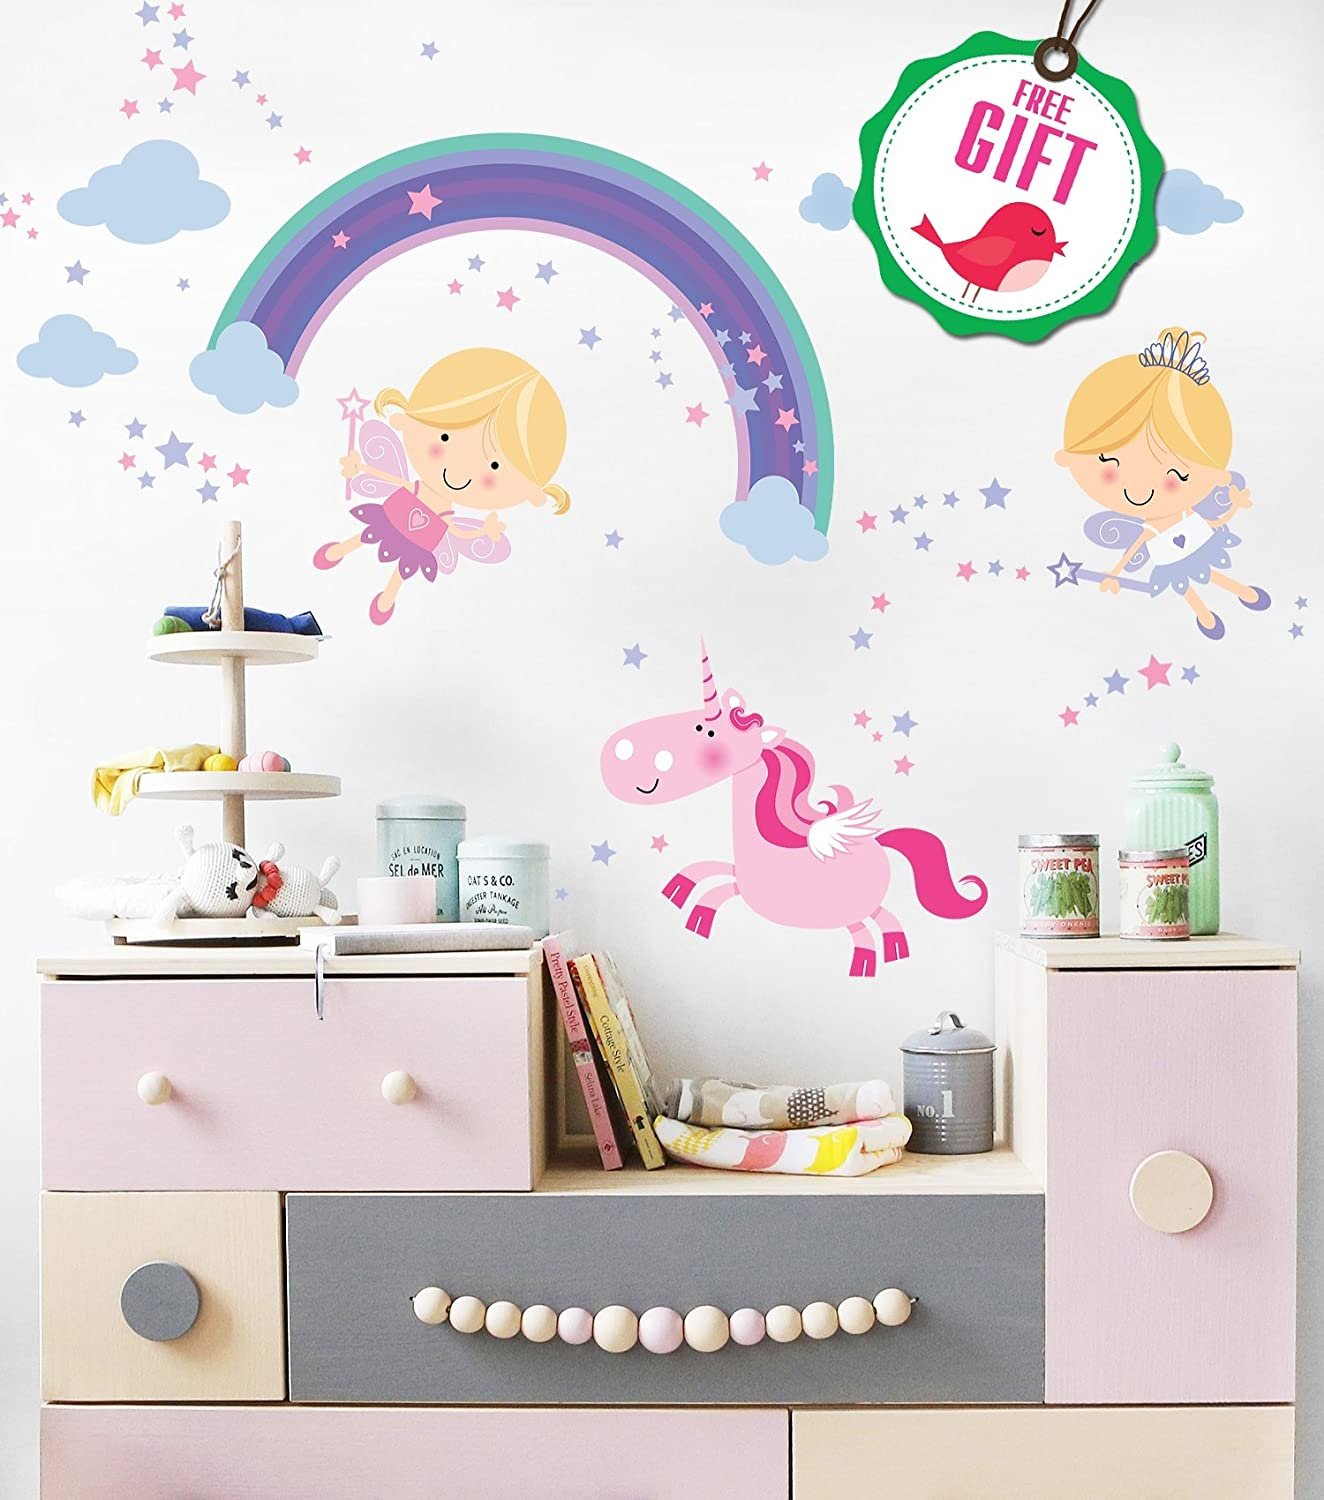 Princess Unicorn Vinyl Wall Decals for Girls - Fairy Nursery Stickers for Bedroom - Cute DIY Removable Room Dé cor for Girl's Bedroom [>25 Pink Art Kids Decals] with Free Gift! DesignStickers